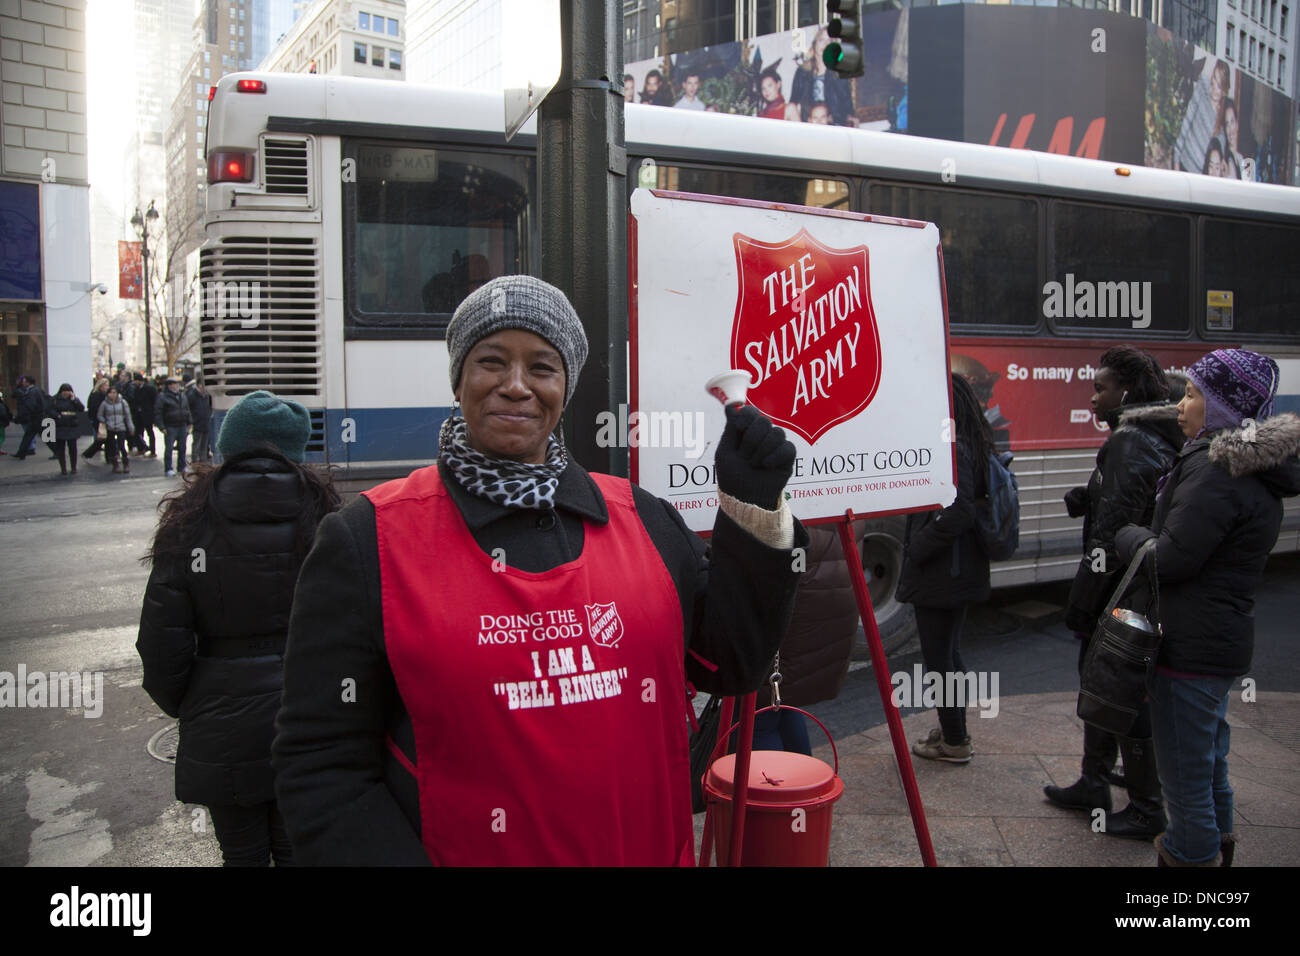 Volunteer woman raises money for the Salvation Army during the Christmas season at 34th Street and Broadway, NYC. - Stock Image